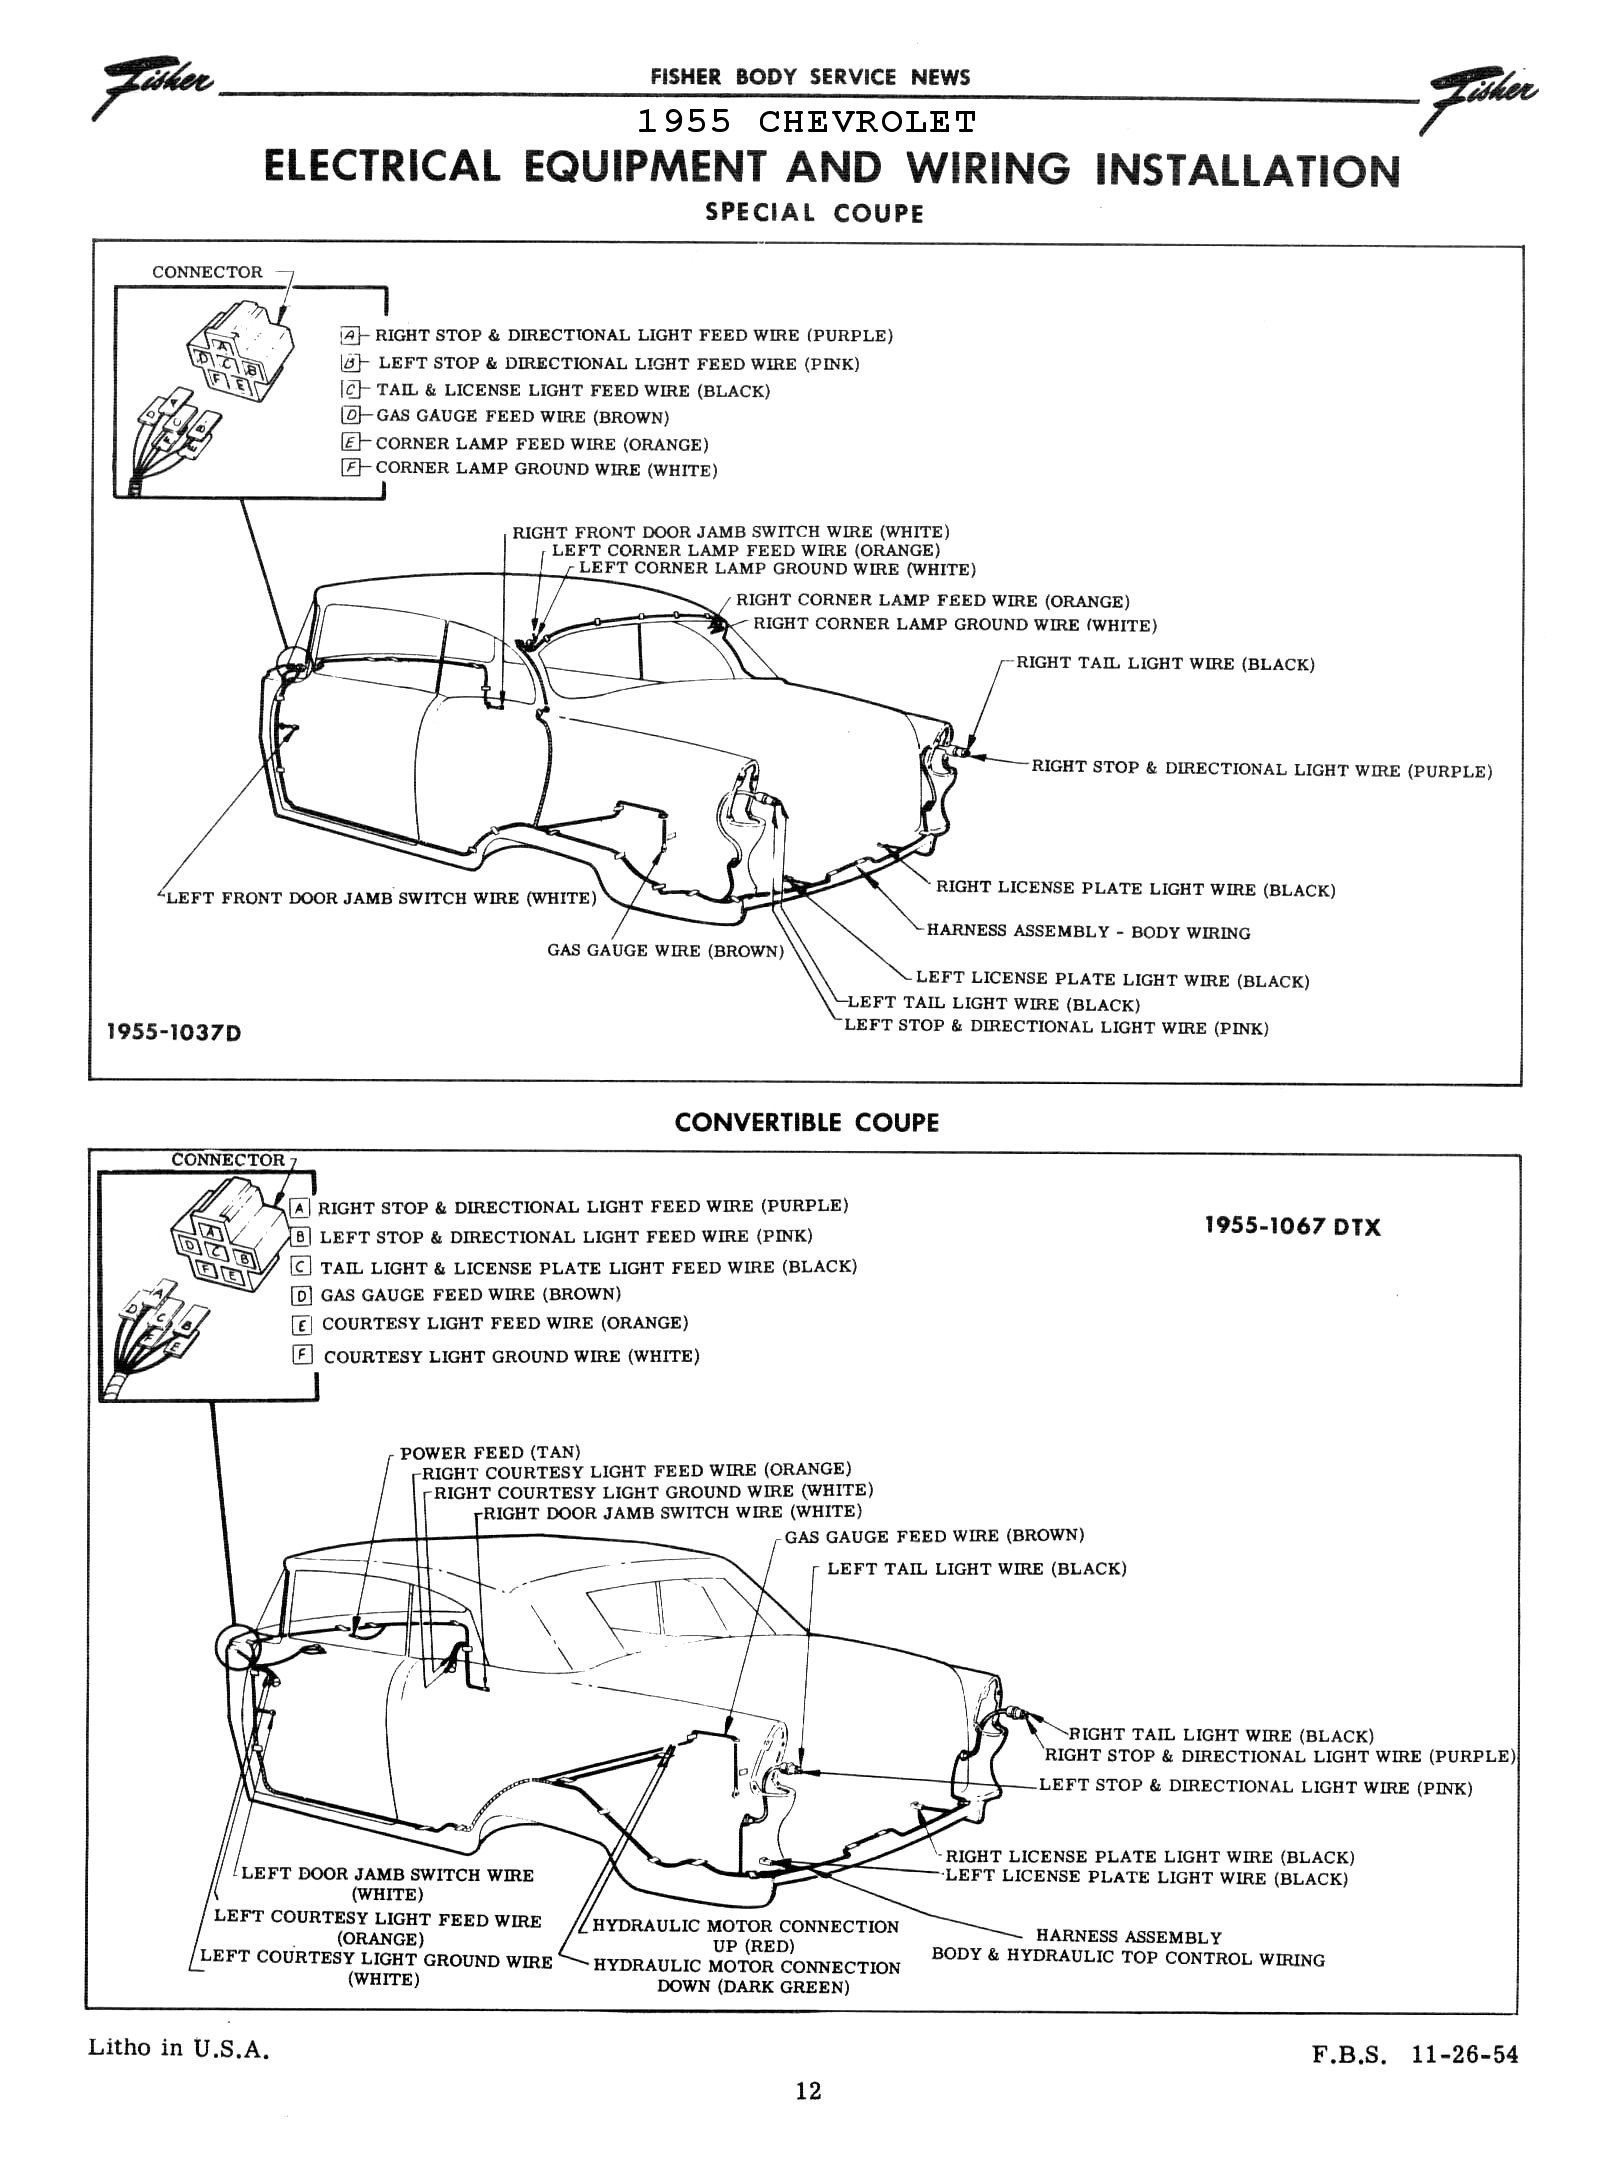 56 Chevy Dash Wiring - Wiring Data schematic on radio shack rheostat diagram, turn signal light wiring diagram, headlight bulb wiring diagram, brake light wiring diagram, dimmer switch installation diagram, 2004 ford crown victoria headlight wiring diagram, peterbilt headlight wiring diagram, turn signal flasher wiring diagram, fog light relay wiring diagram, power window relay wiring diagram, alternator wiring diagram, 3 wire headlight wiring diagram, 2000 jeep cherokee headlight wiring diagram, headlight plug wiring, fuse wiring diagram, 3 wire dimmer switch diagram, headlight relay wiring diagram, driving light relay wiring diagram, headlight switch replacement, vw bug turn signal wiring diagram,